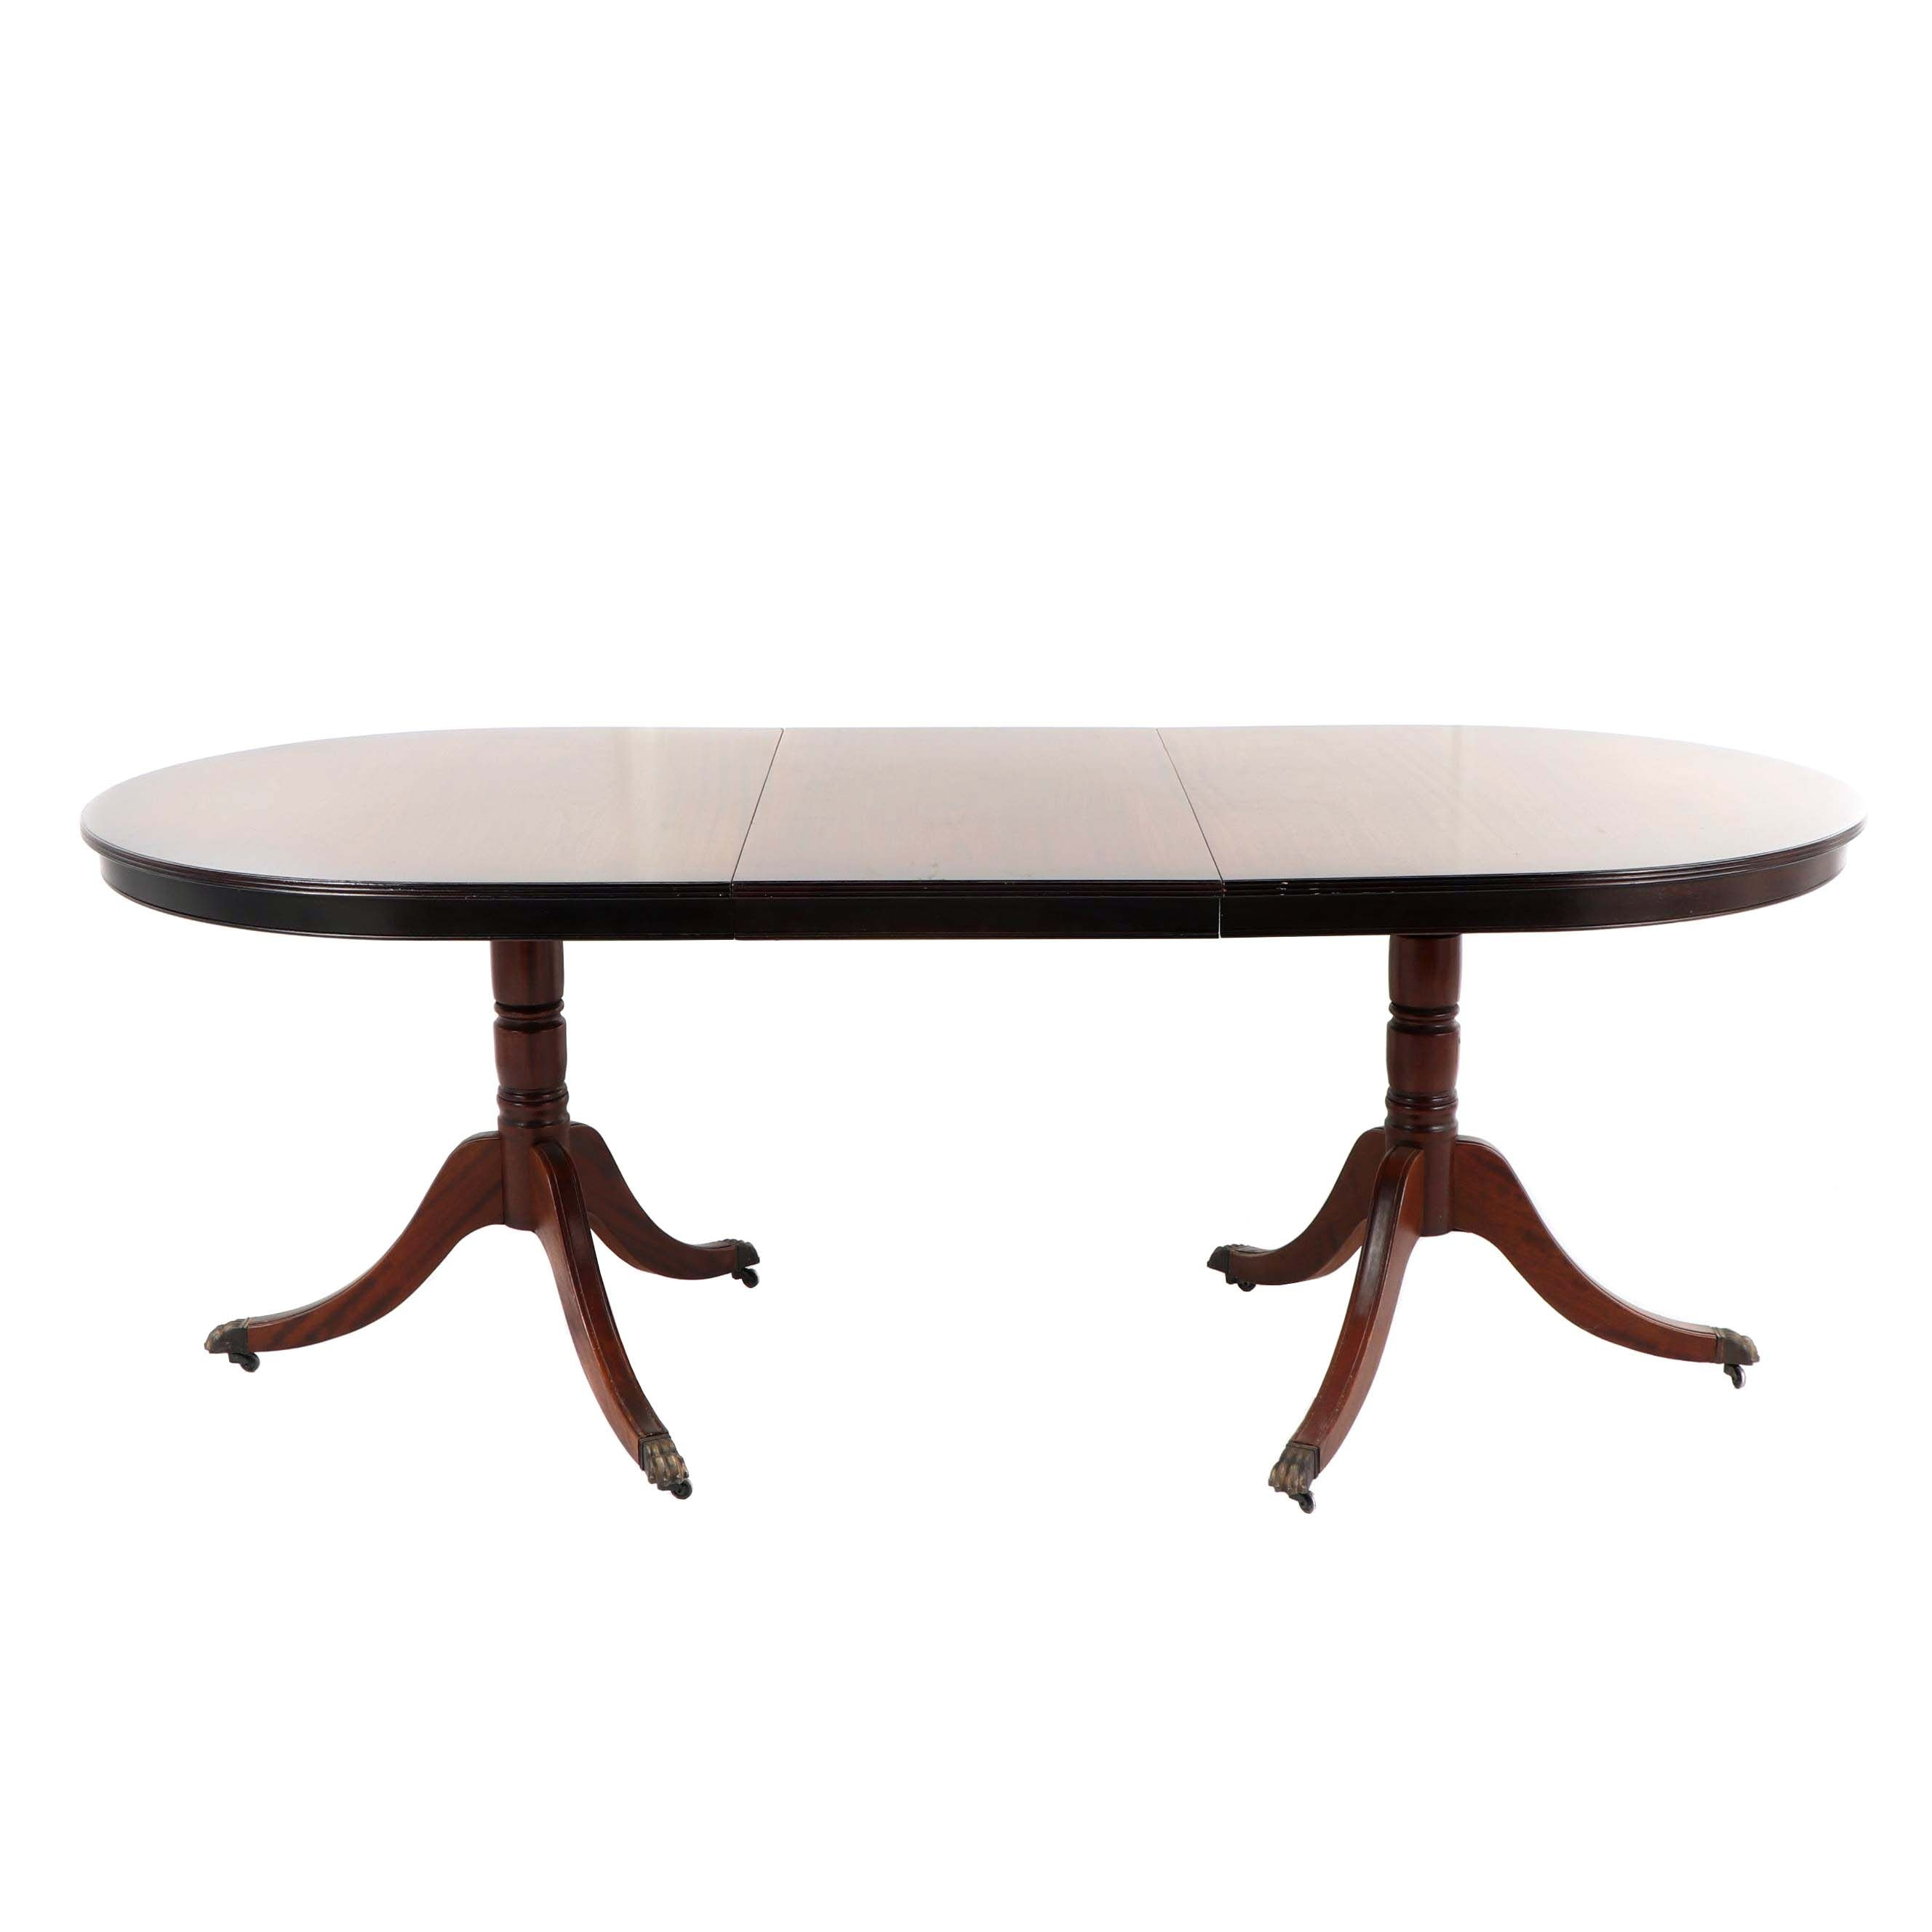 Federal Style Mahogany Double Pedestal Dining Table, Mid 20th Century